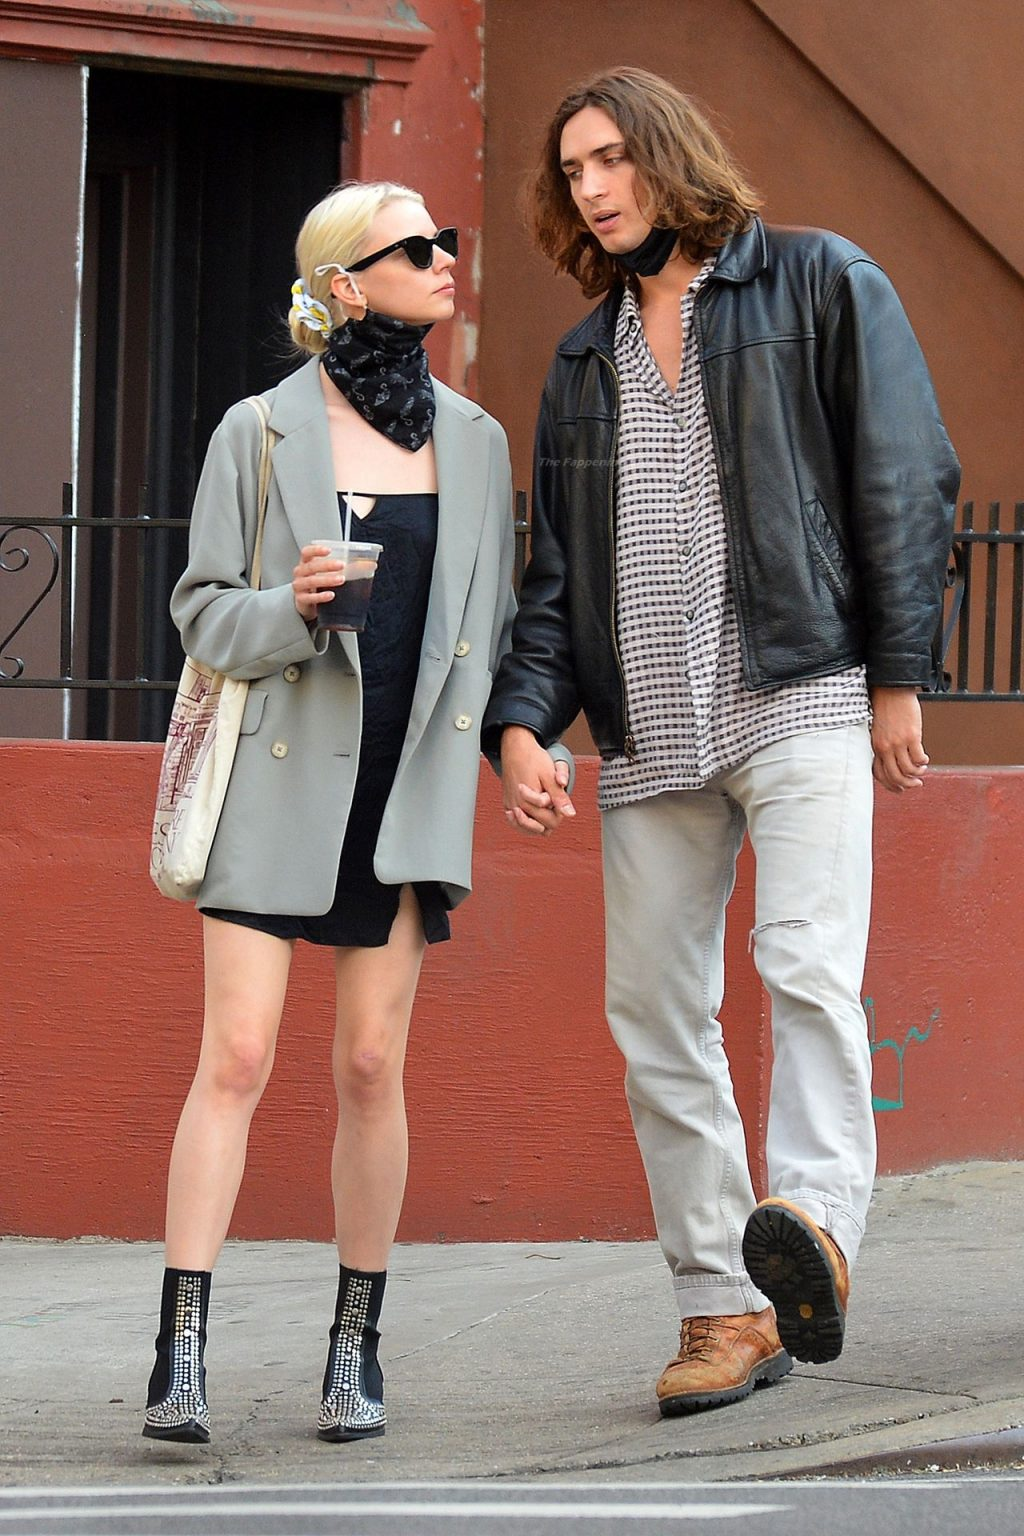 Anya Taylor-Joy is Spotted Packing on The PDA With Actor Malcolm McRae in NYC (41 Photos)